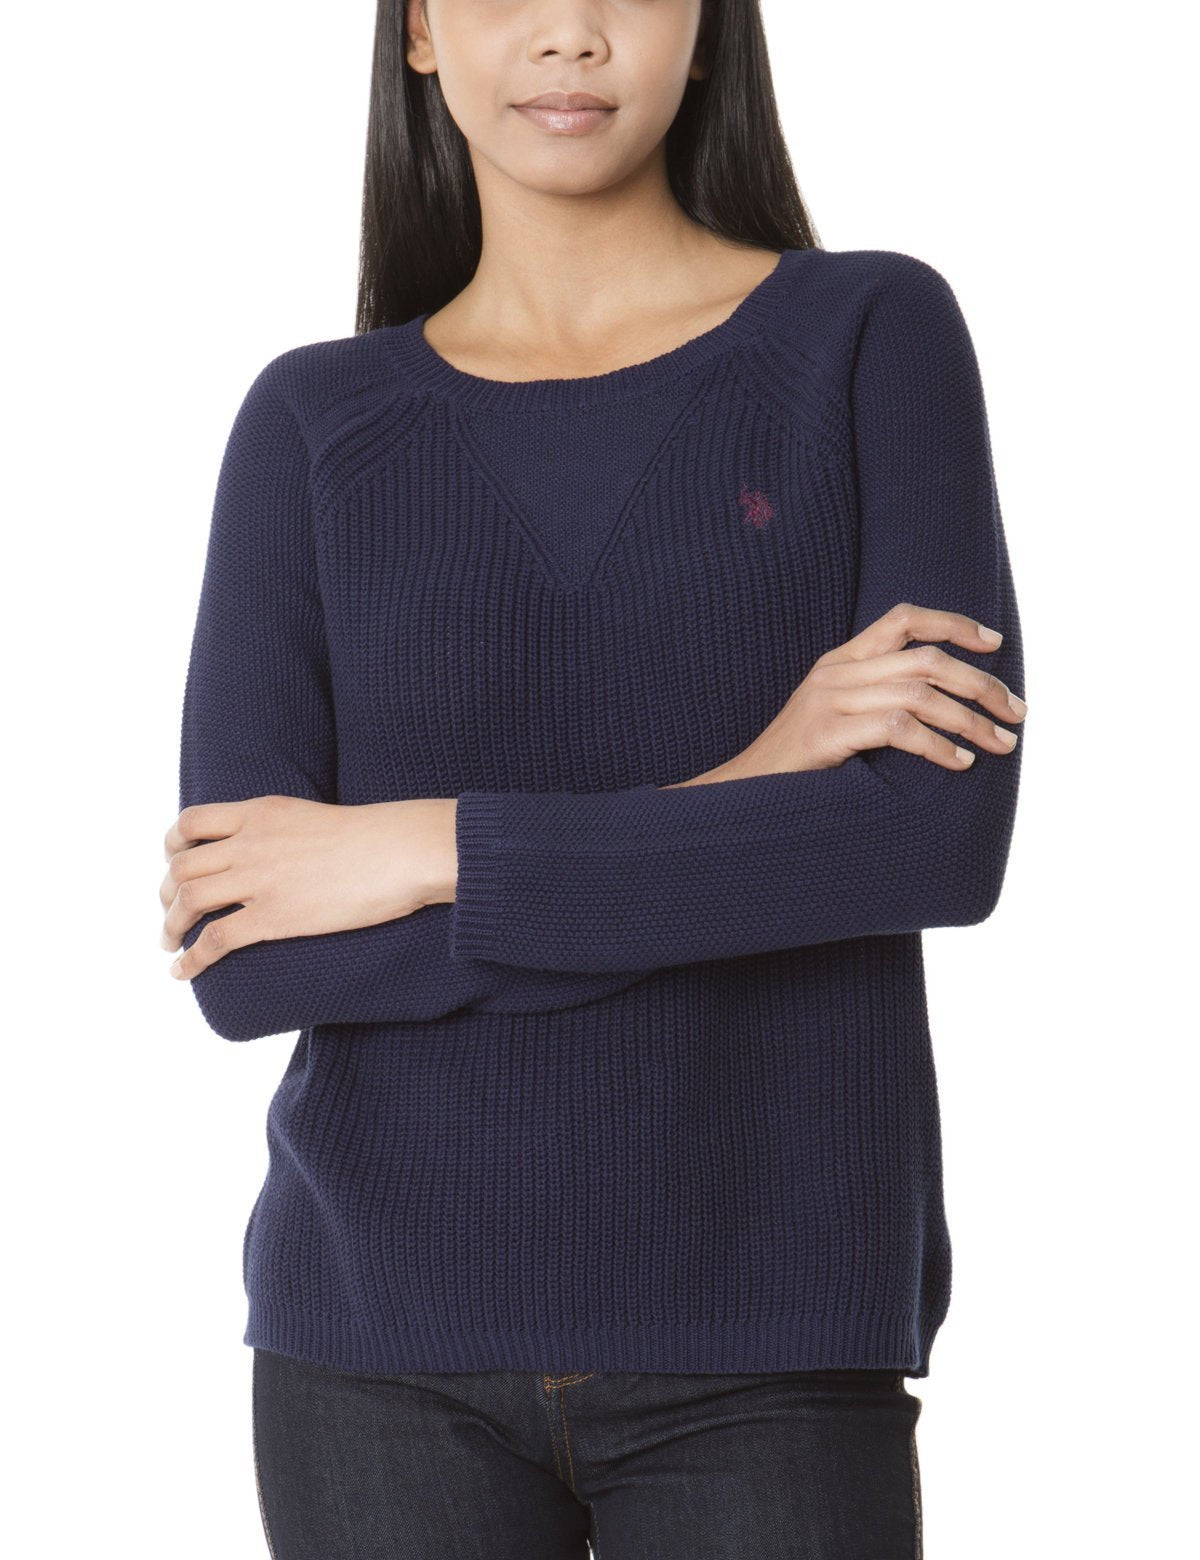 SEAMED DETAIL SWEATER